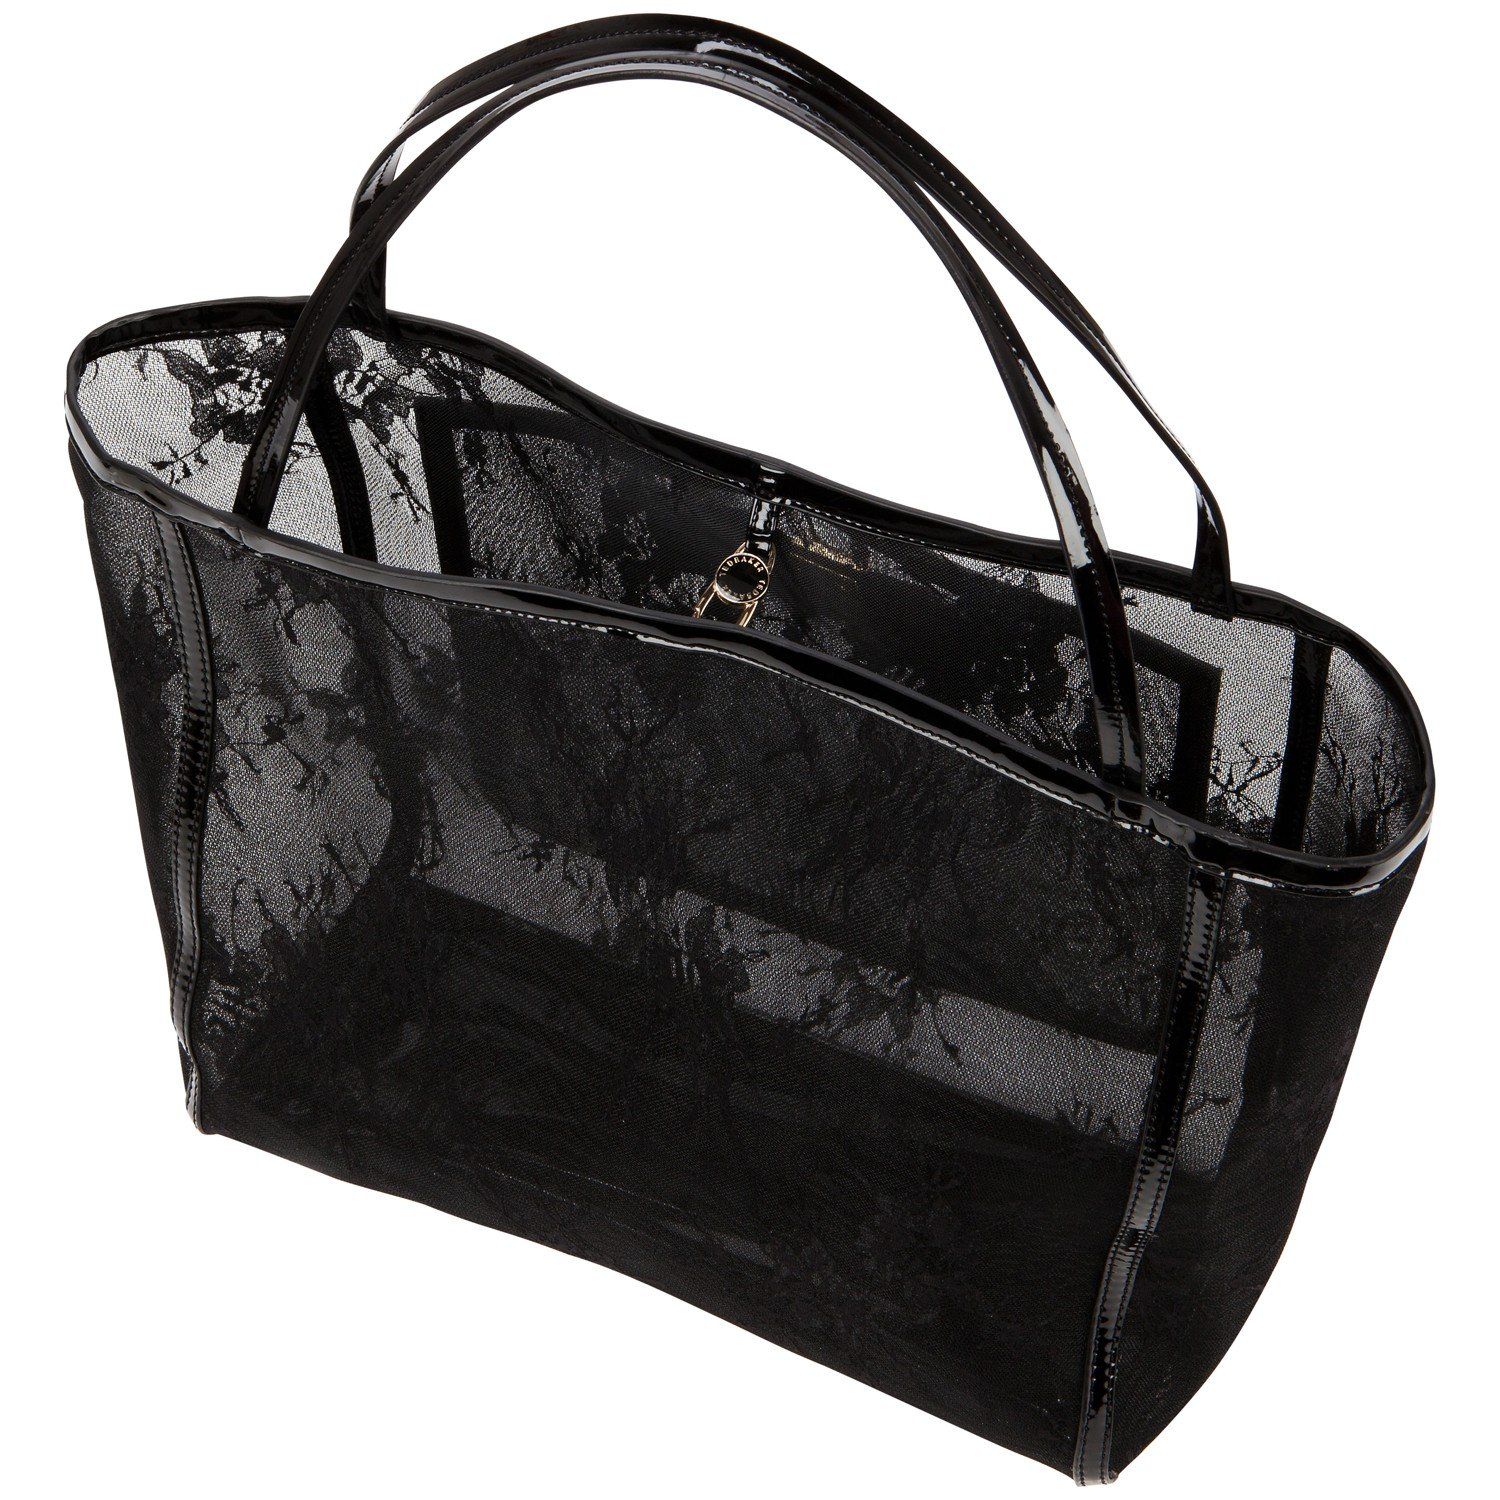 837fe0d2bd10f Ted Baker Lacett Large Lace Shopper Bag in Black - Lyst